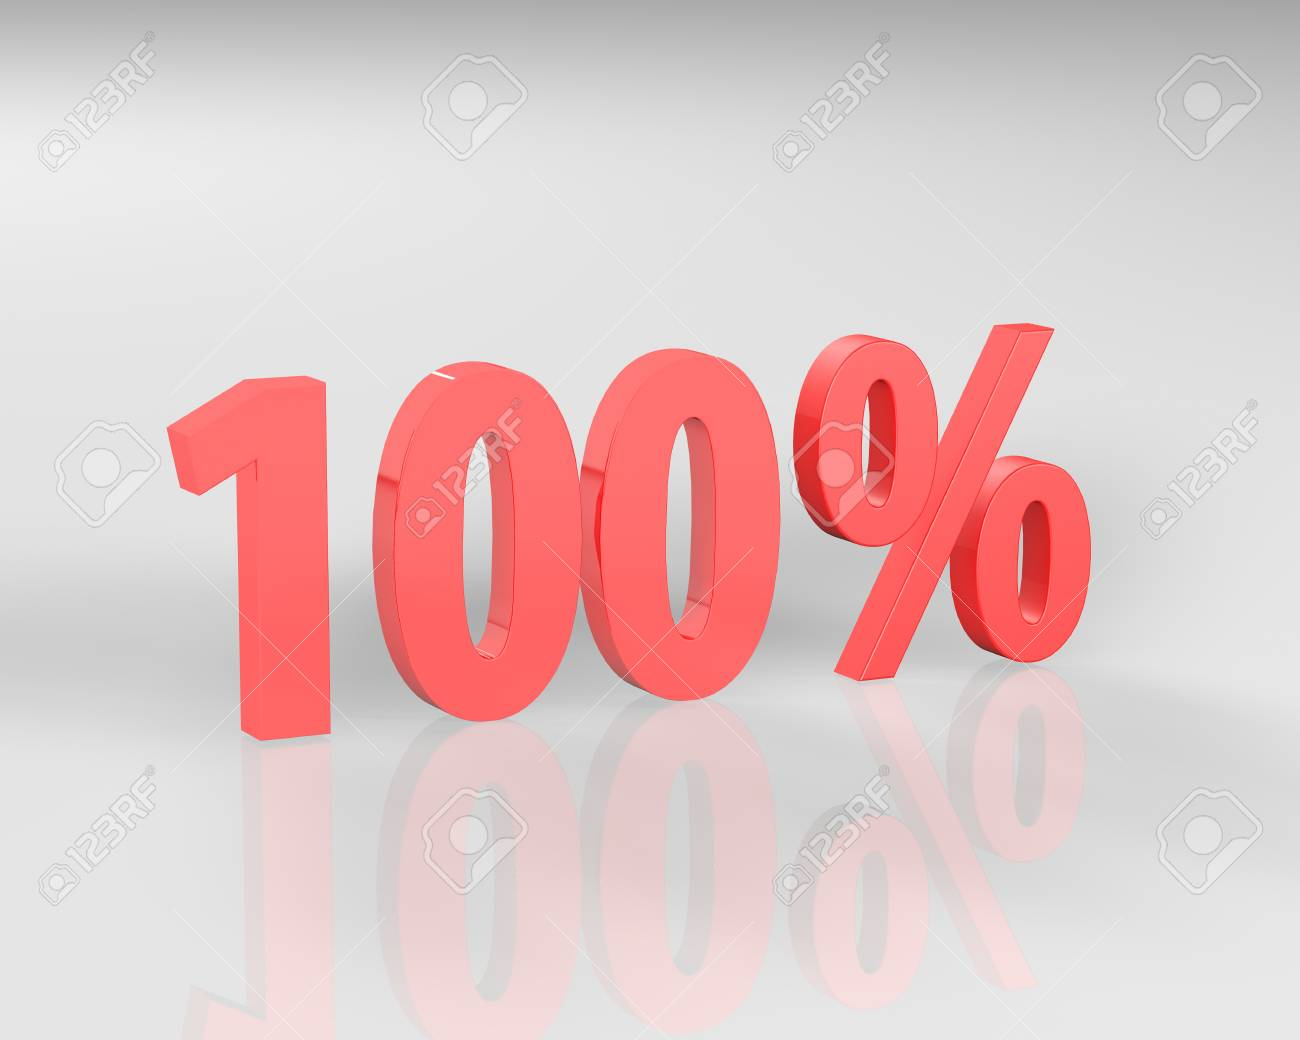 3D rendering of a 100 percent in red letters on a white background - 66024500